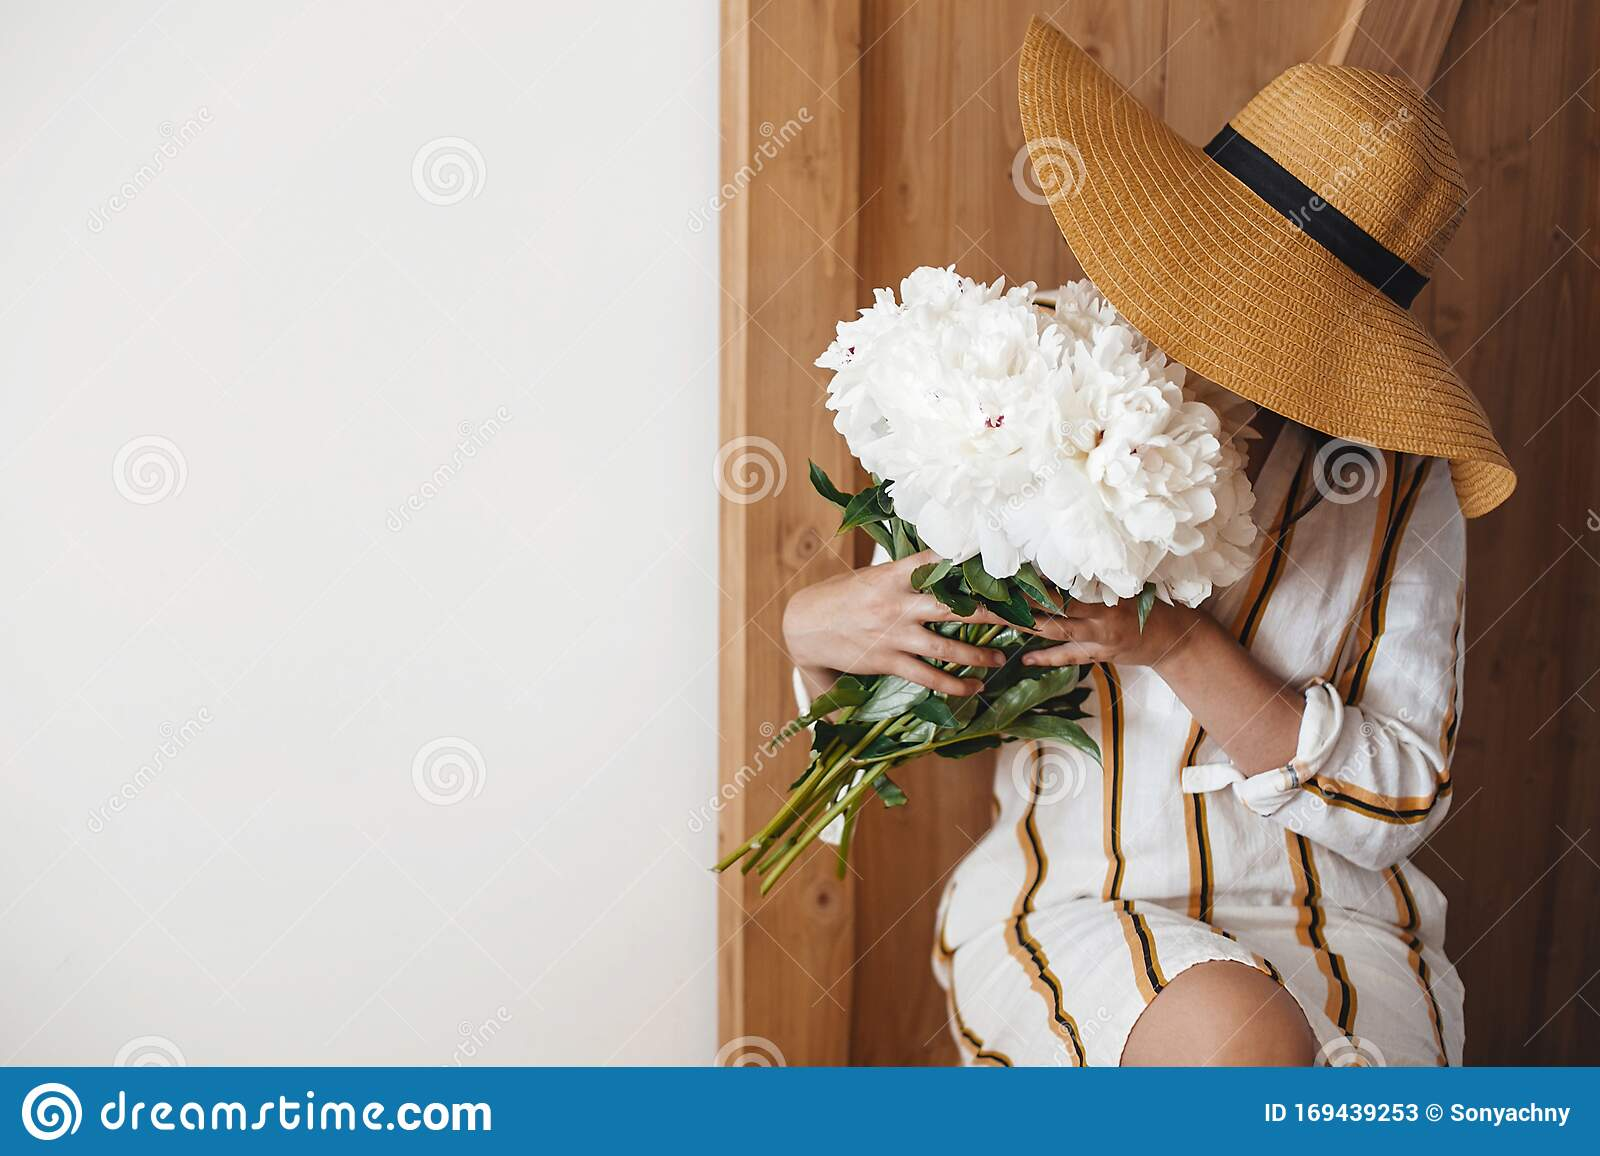 International Womens Days Stylish Boho Woman In Hat Holding White Peony Bouquet On Rustic Wooden Background Space For Text Stock Image Image Of Card Beautiful 169439253